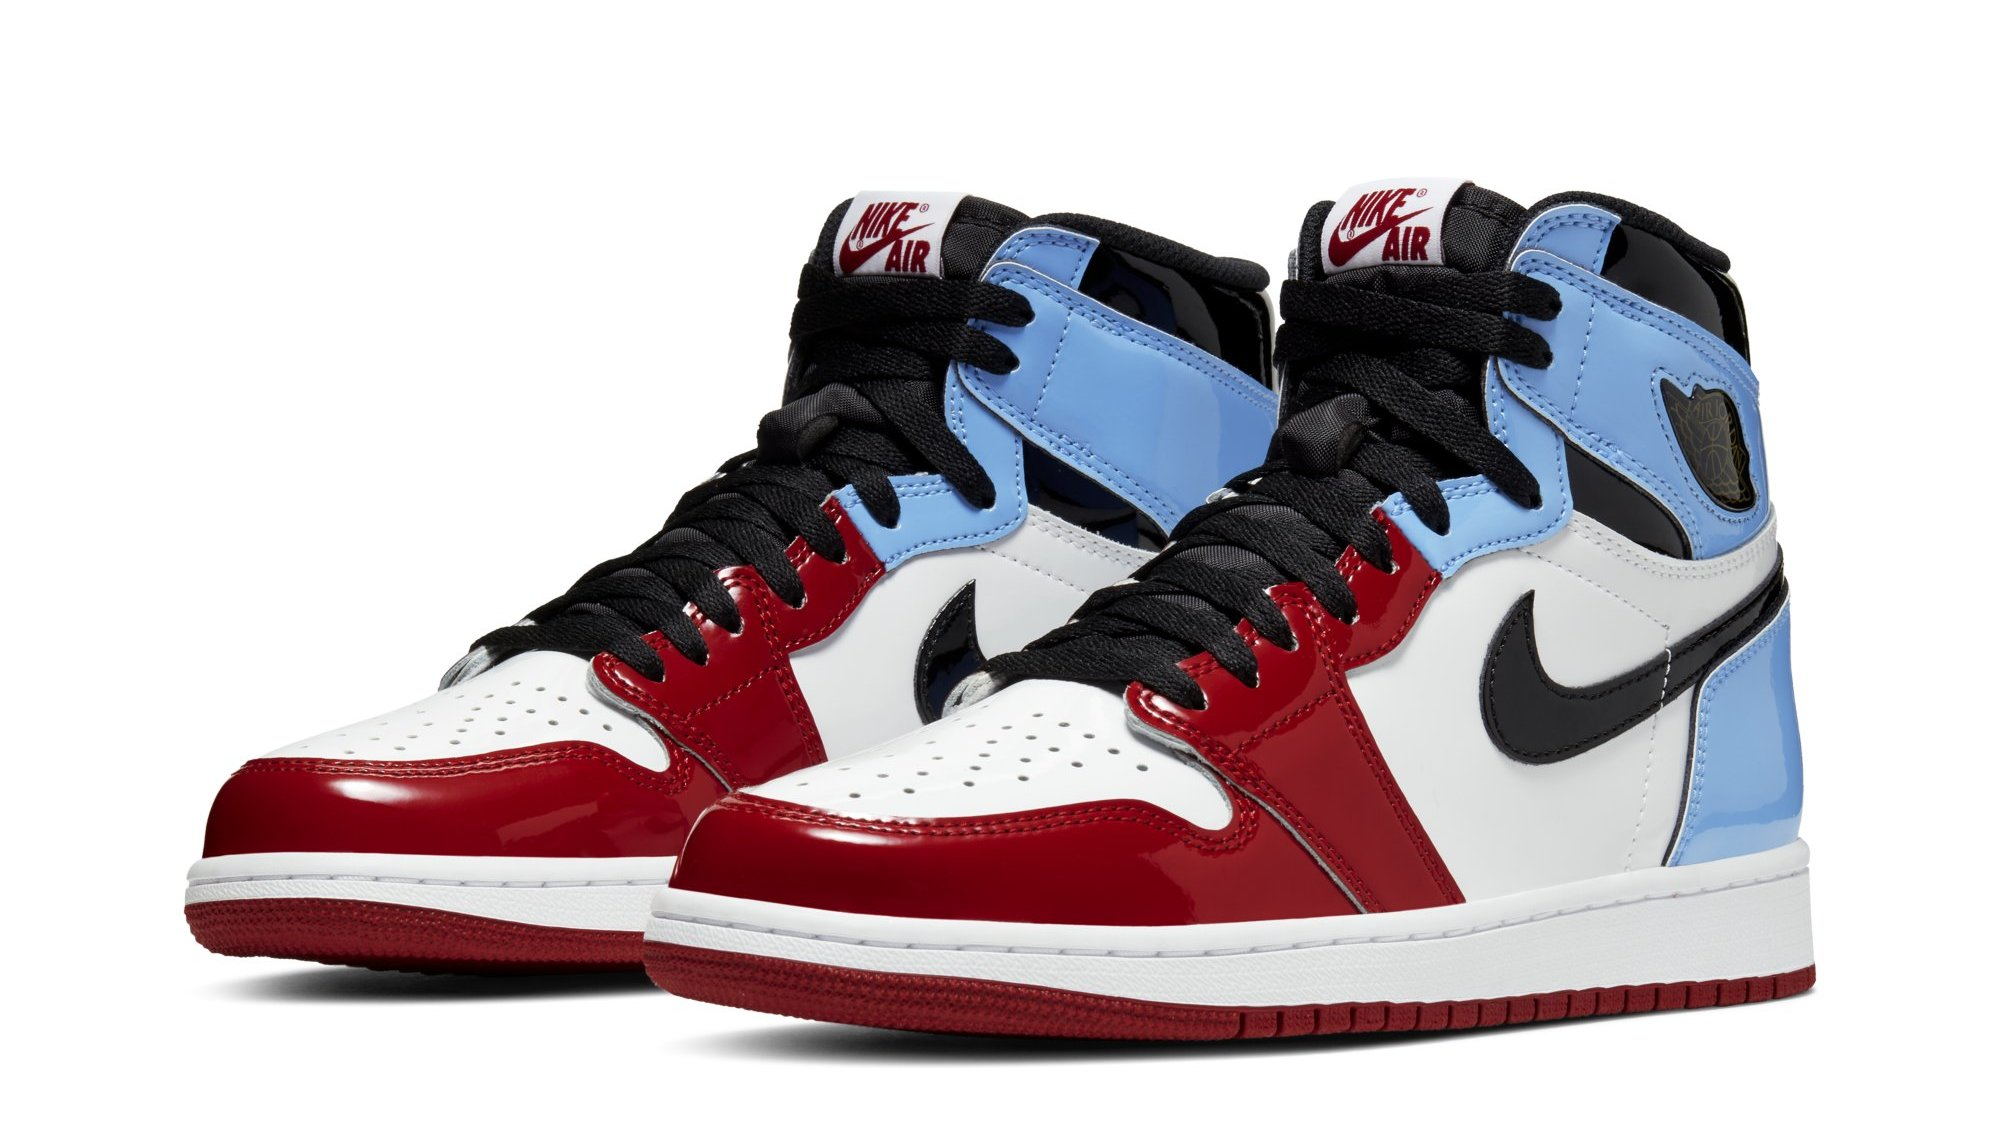 Air Jordan 1 Retro High Og Fearless Unc To Chicago Release Date